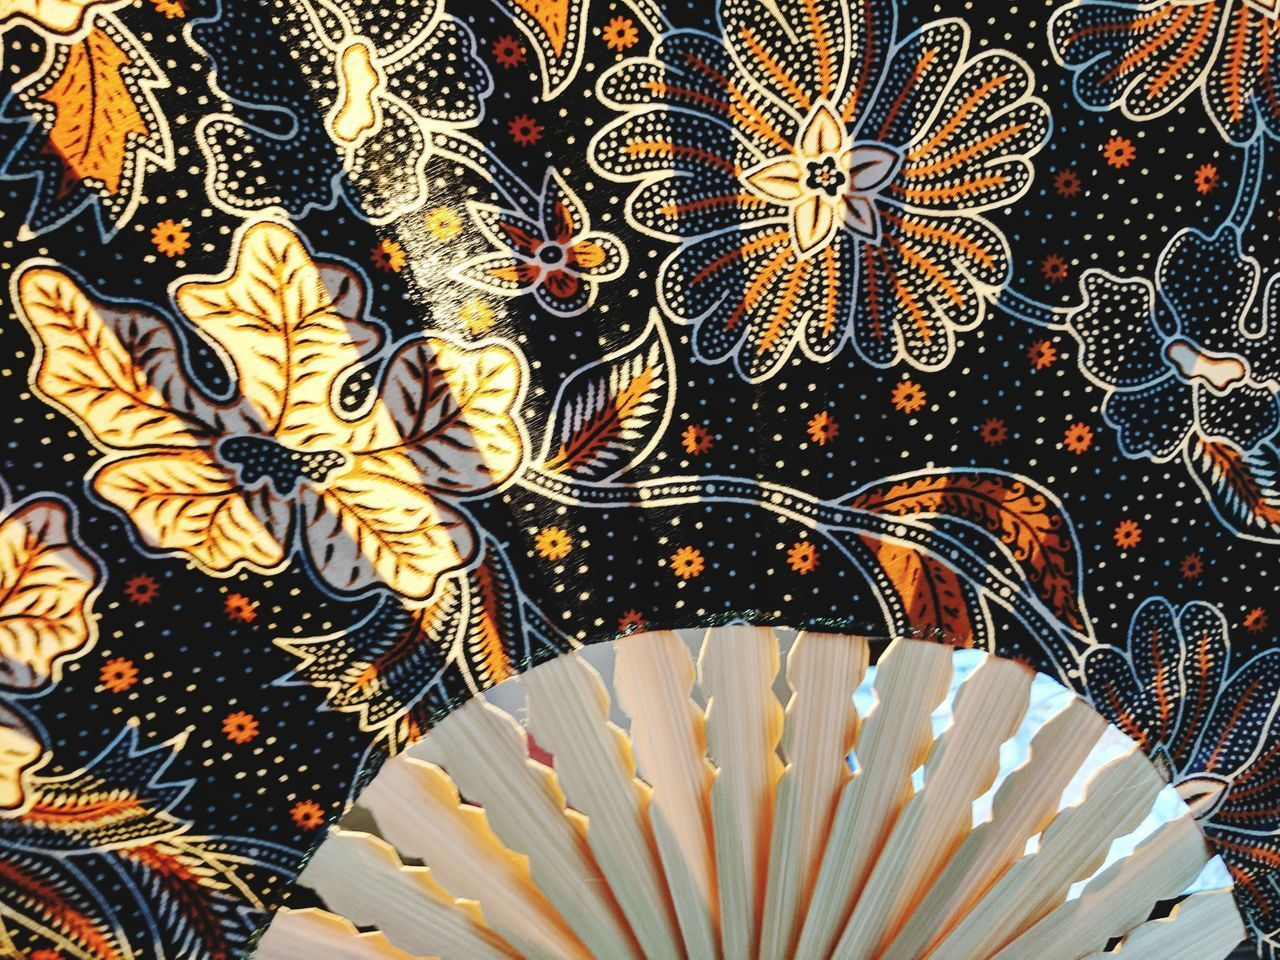 pattern, indoors, design, no people, close-up, floral pattern, backgrounds, art and craft, creativity, textile, decoration, hand fan, full frame, still life, craft, multi colored, yellow, white color, high angle view, clothing, embroidery, luxury